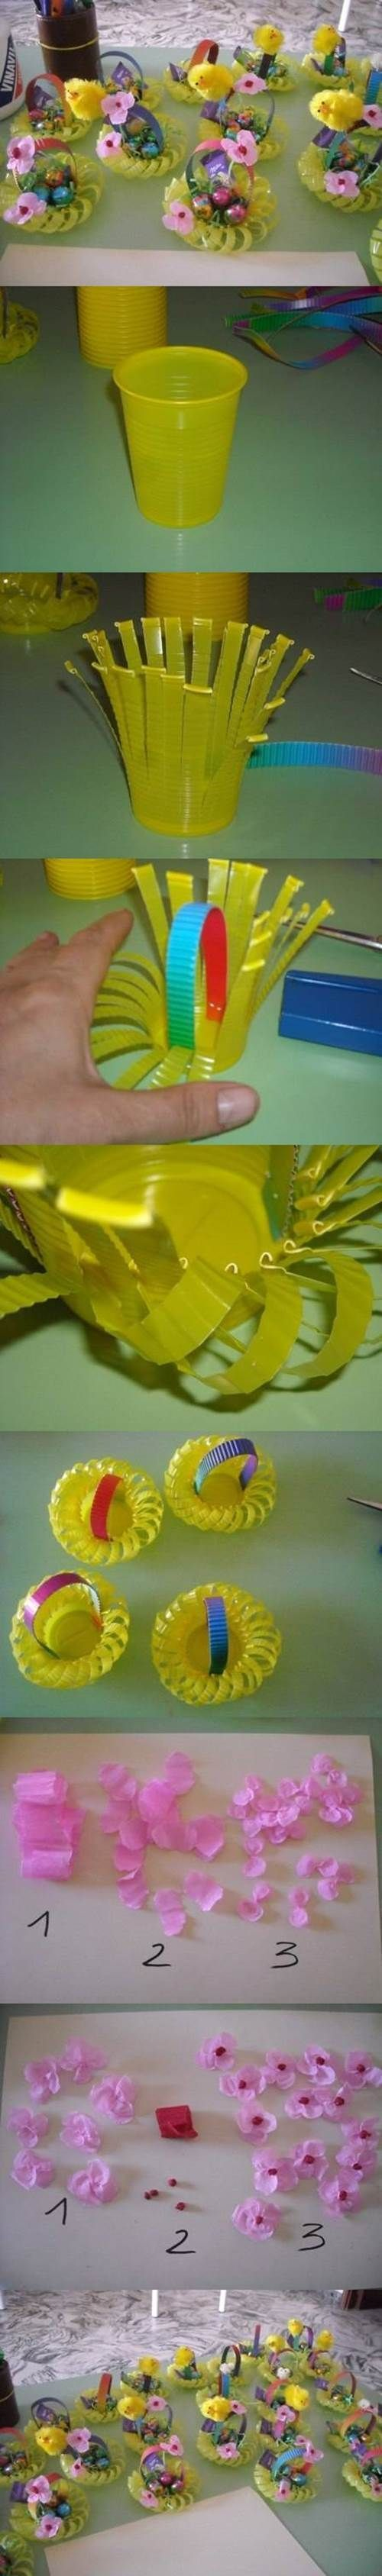 DIY Plastic Cup Easter Basket #craft #Easter: